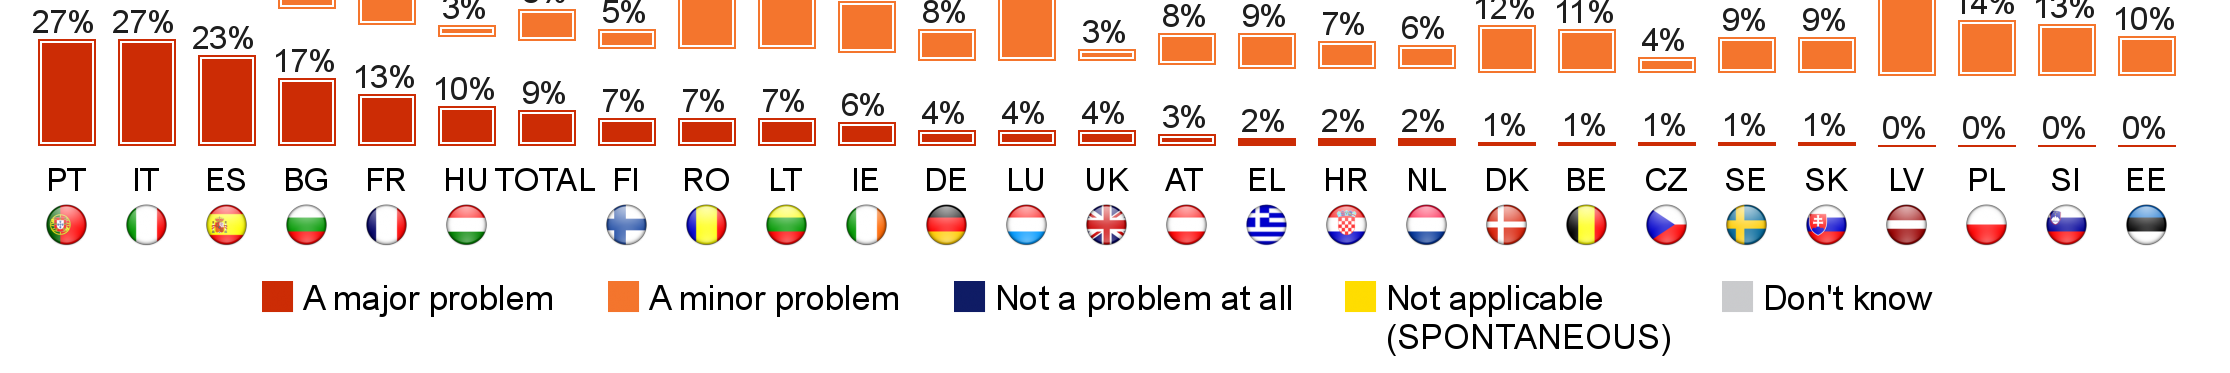 FLASH EUROBAROMETER Companies in Bulgaria (40), Italy, Portugal (both 33) and France (30) are the most likely to report at least some problems with clients abroad not having fast enough Internet